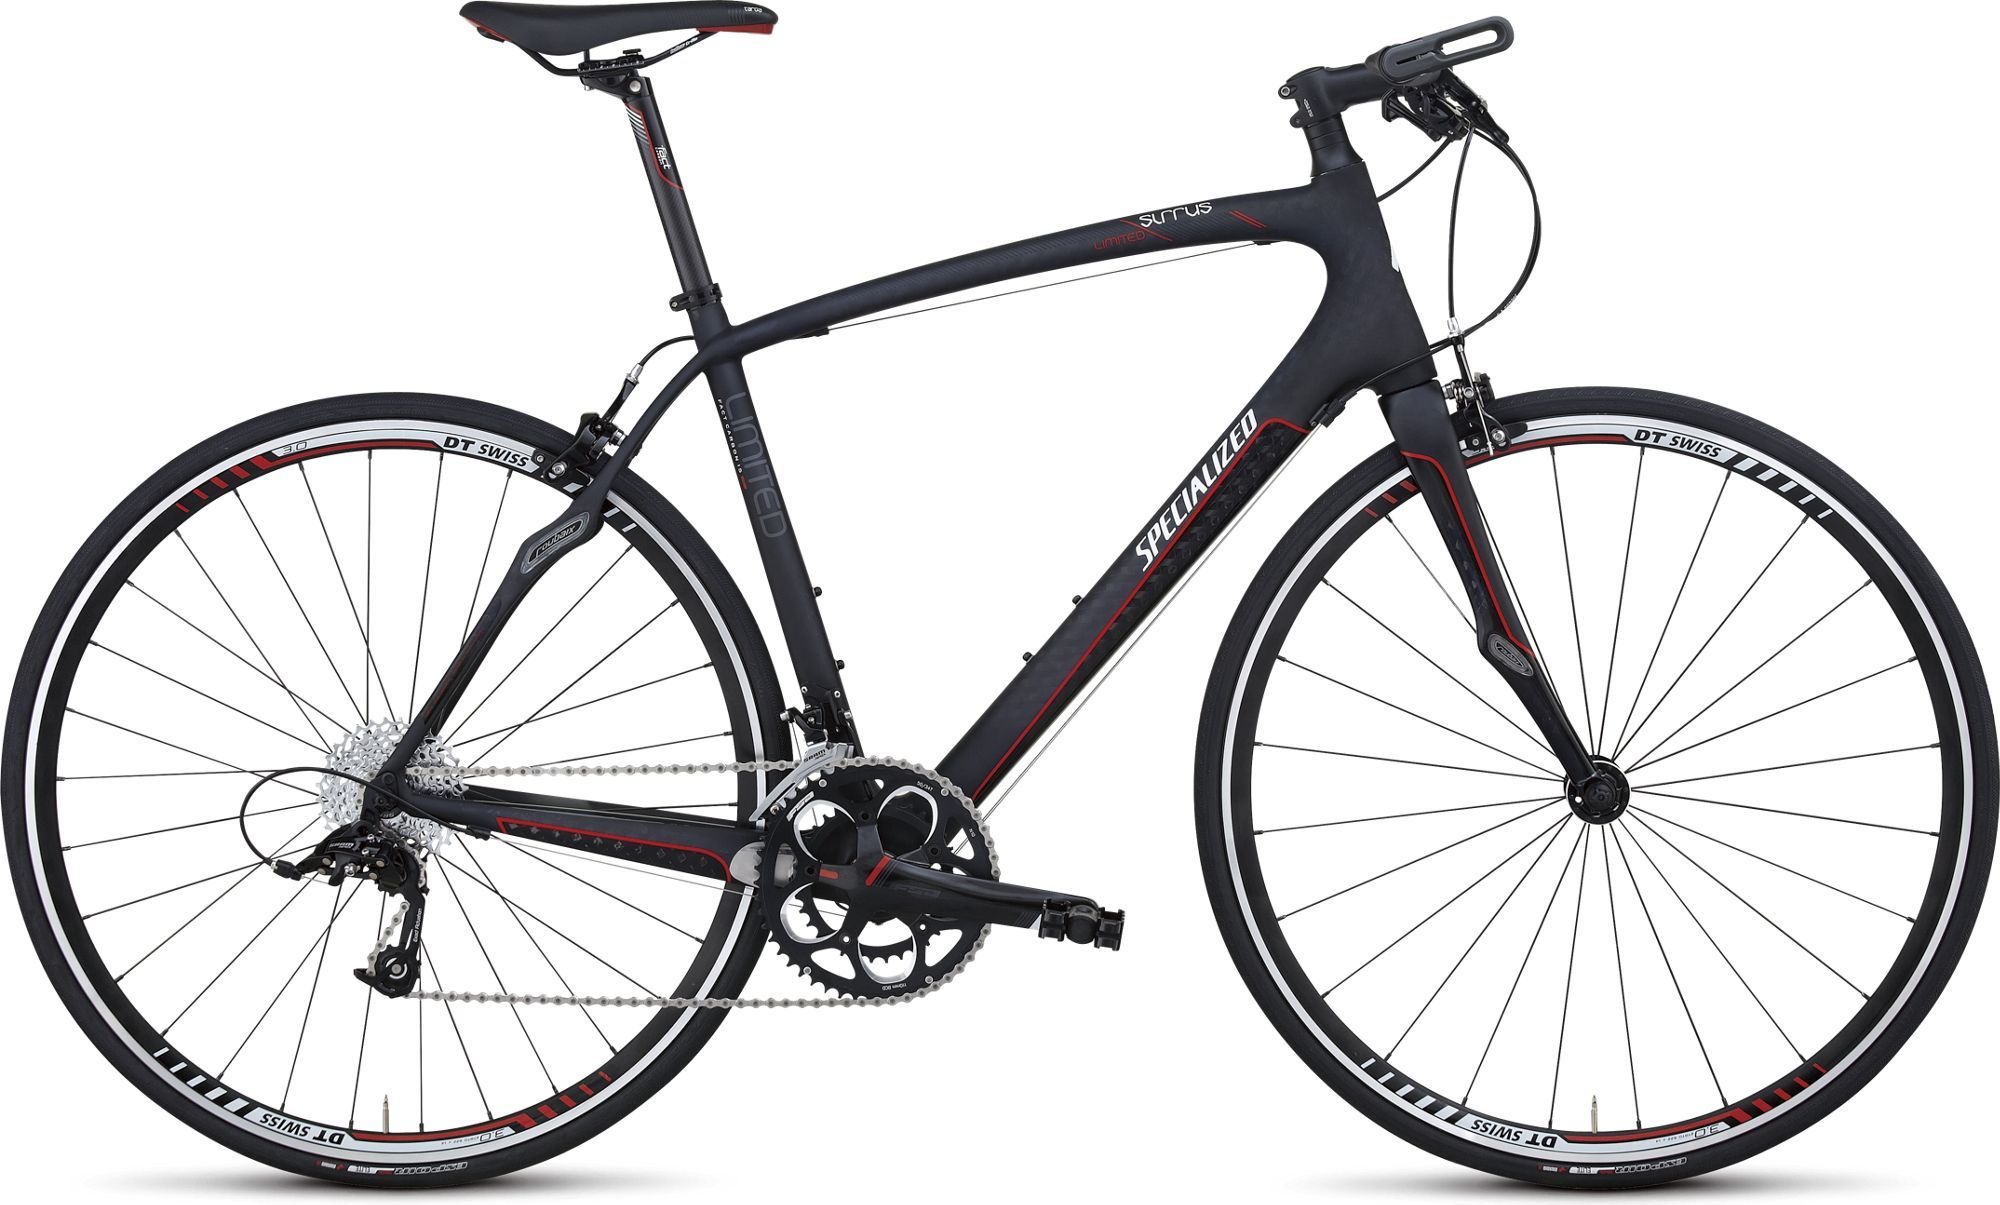 484c5def1bb Specialized Sirrus Limited 2013 review - The Bike List